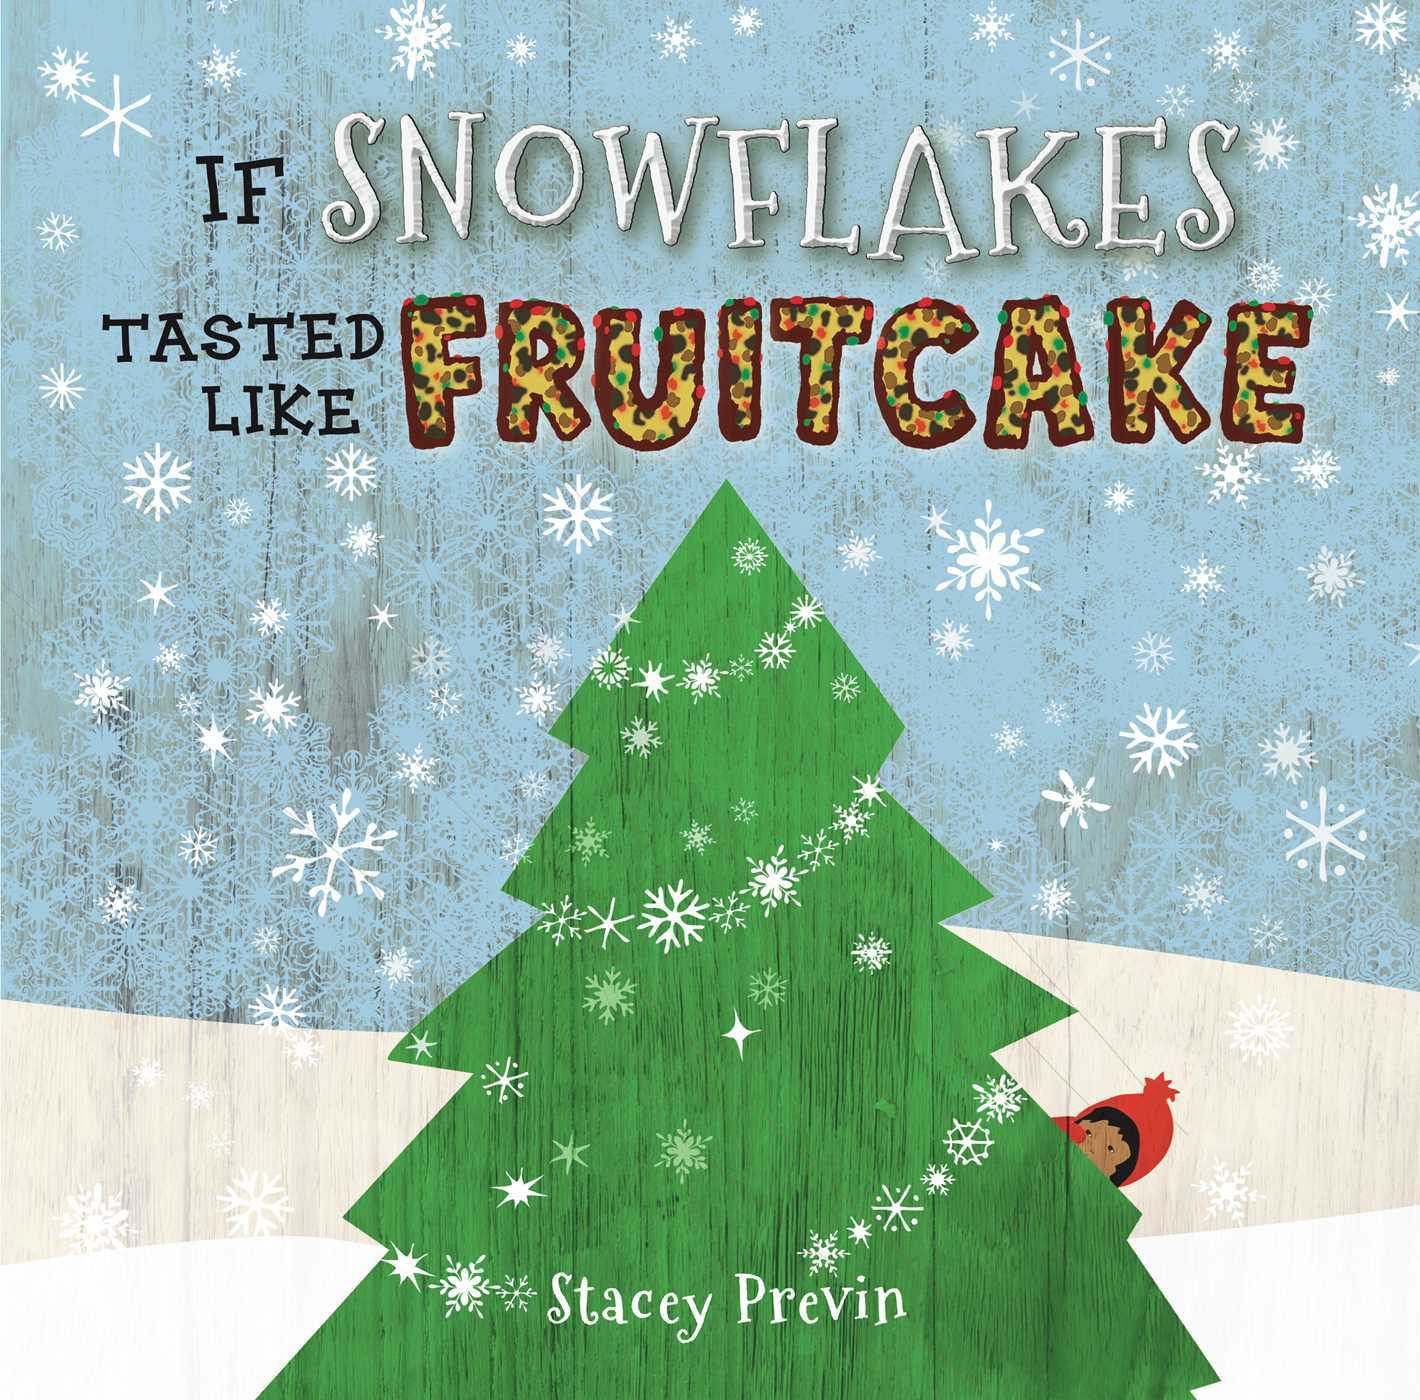 If Snowflakes Tasted Like Fruitcake Stacey Previn